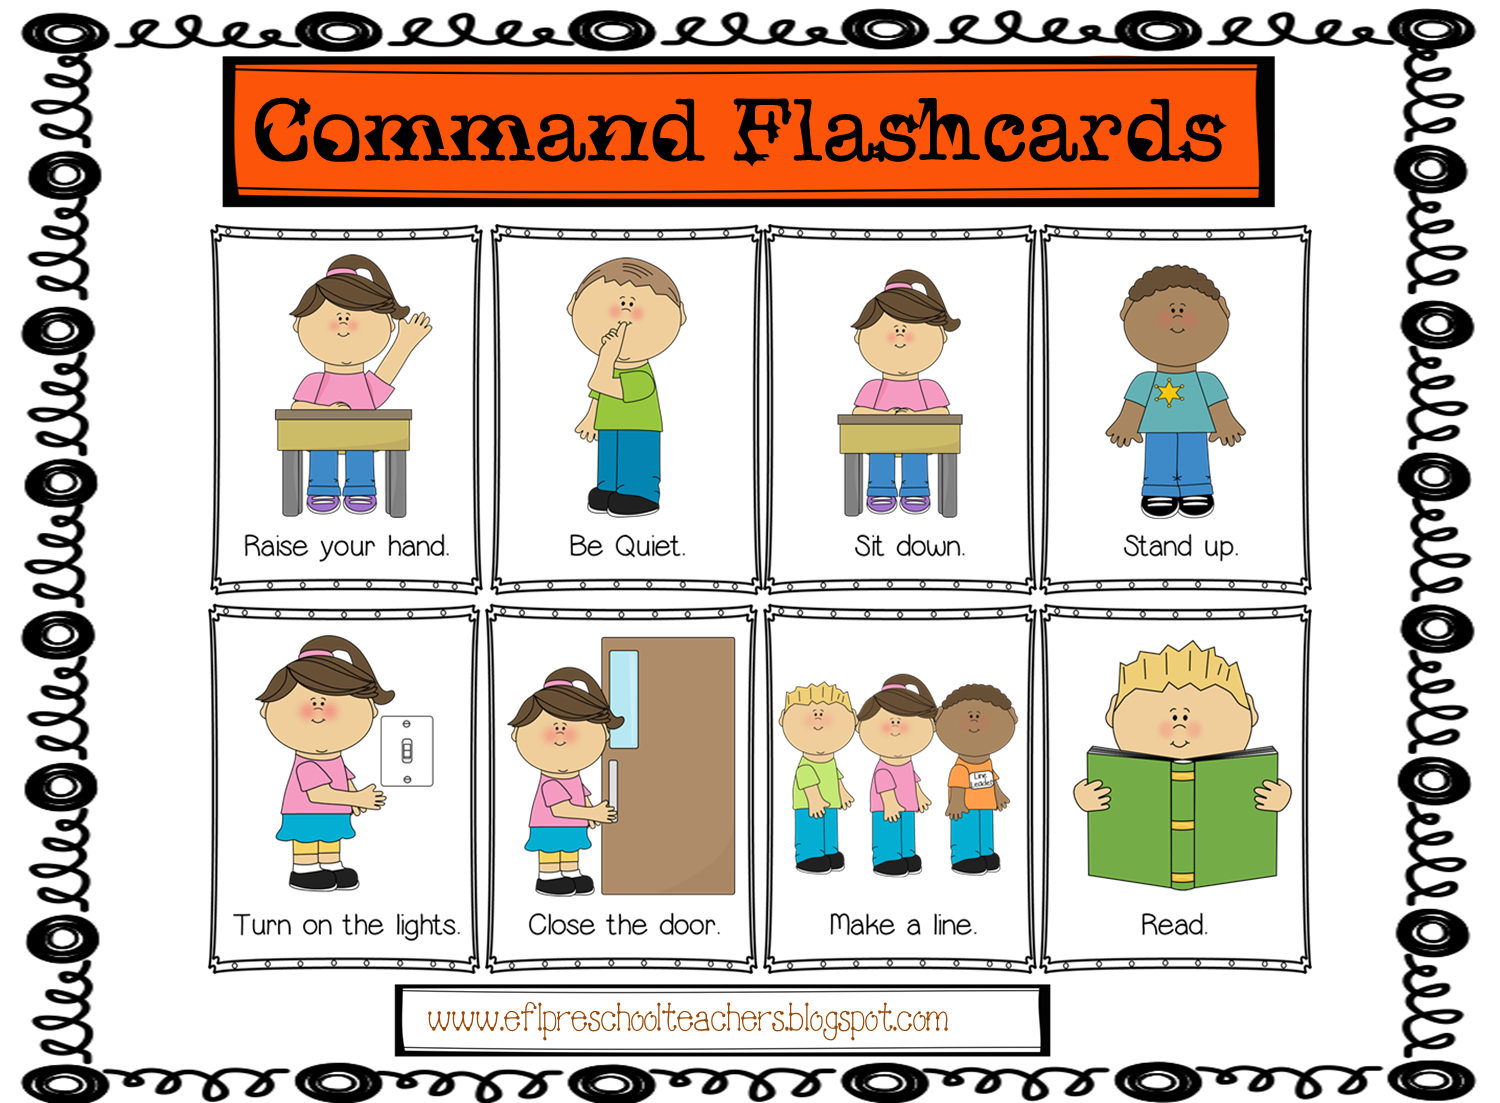 Esl Commands Flashcards